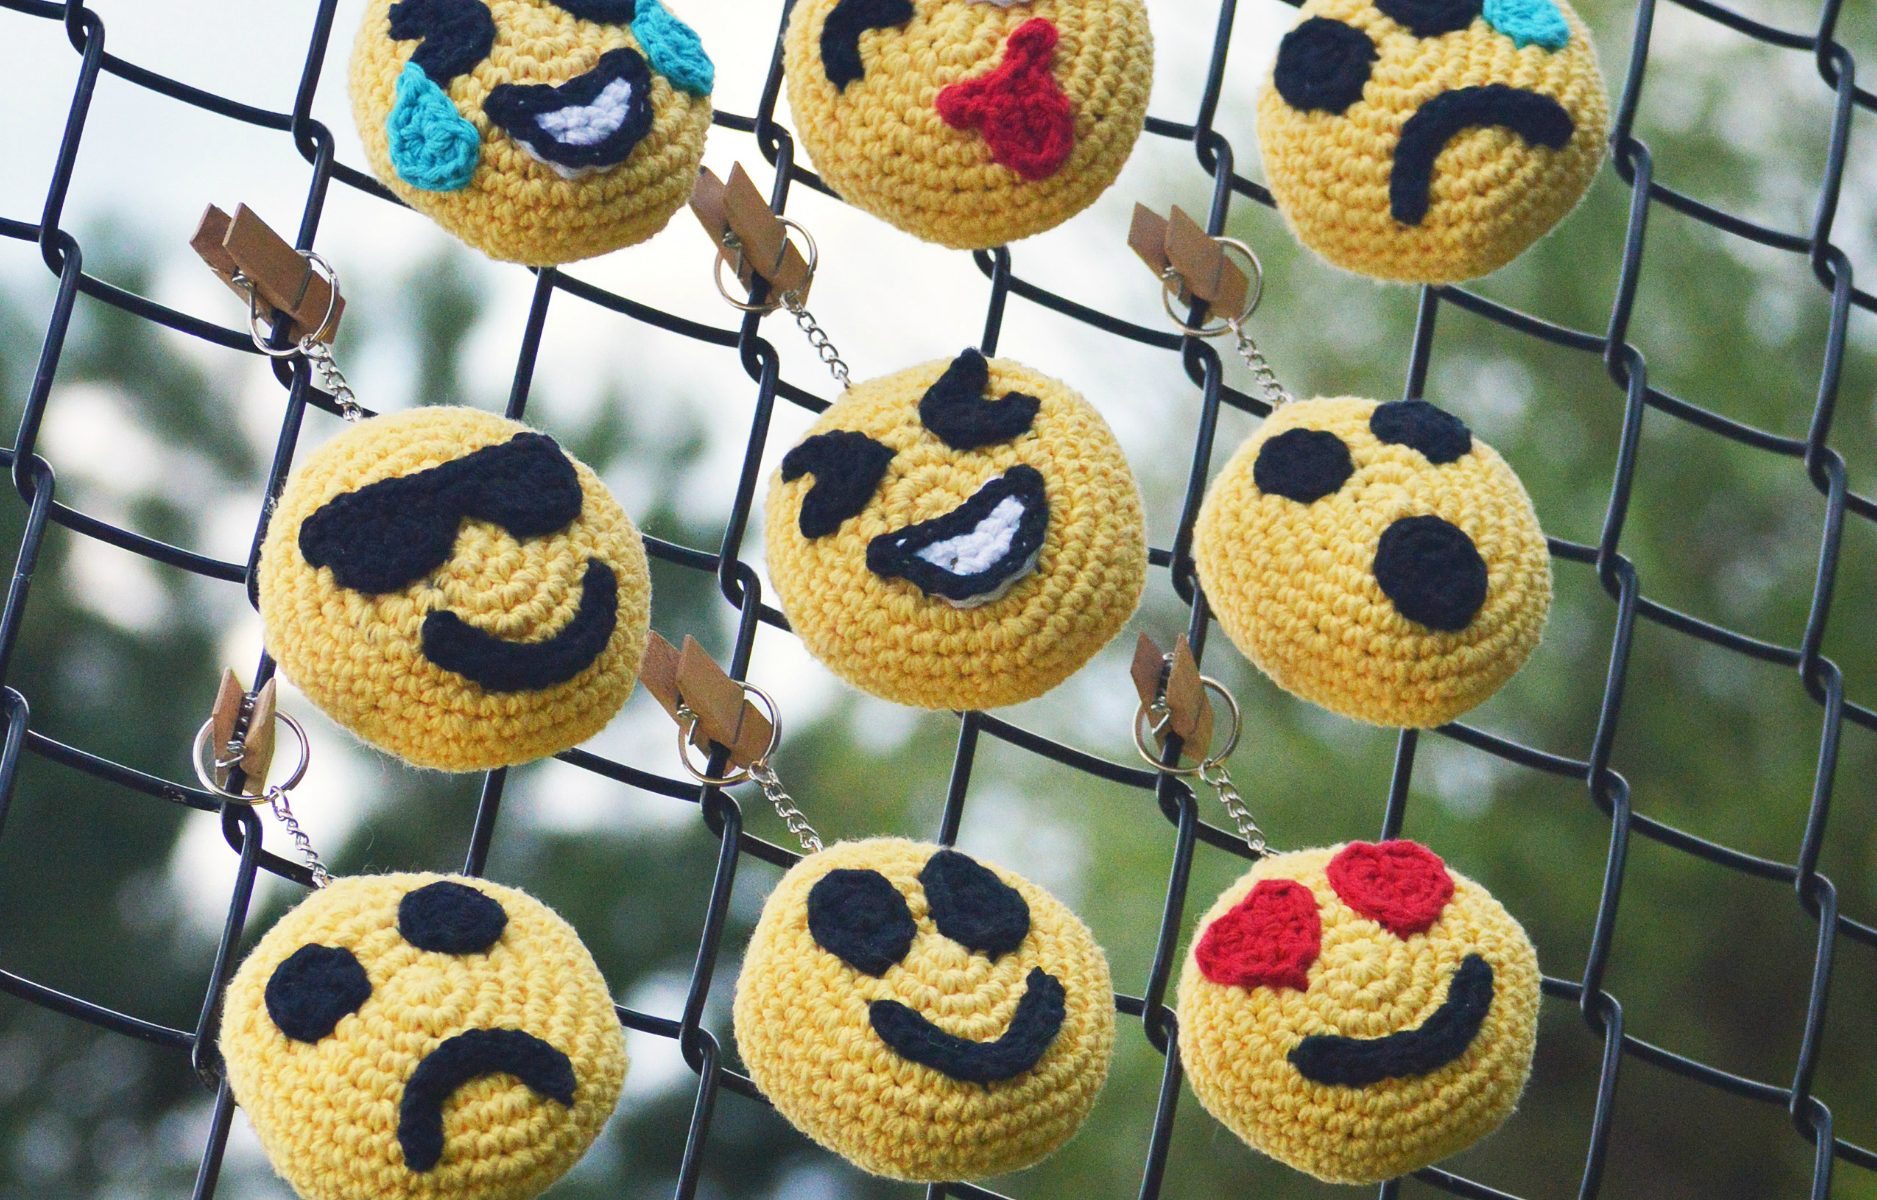 Crochet Emoji Keychain - Pattern Release! • Green Fox Farms Designs